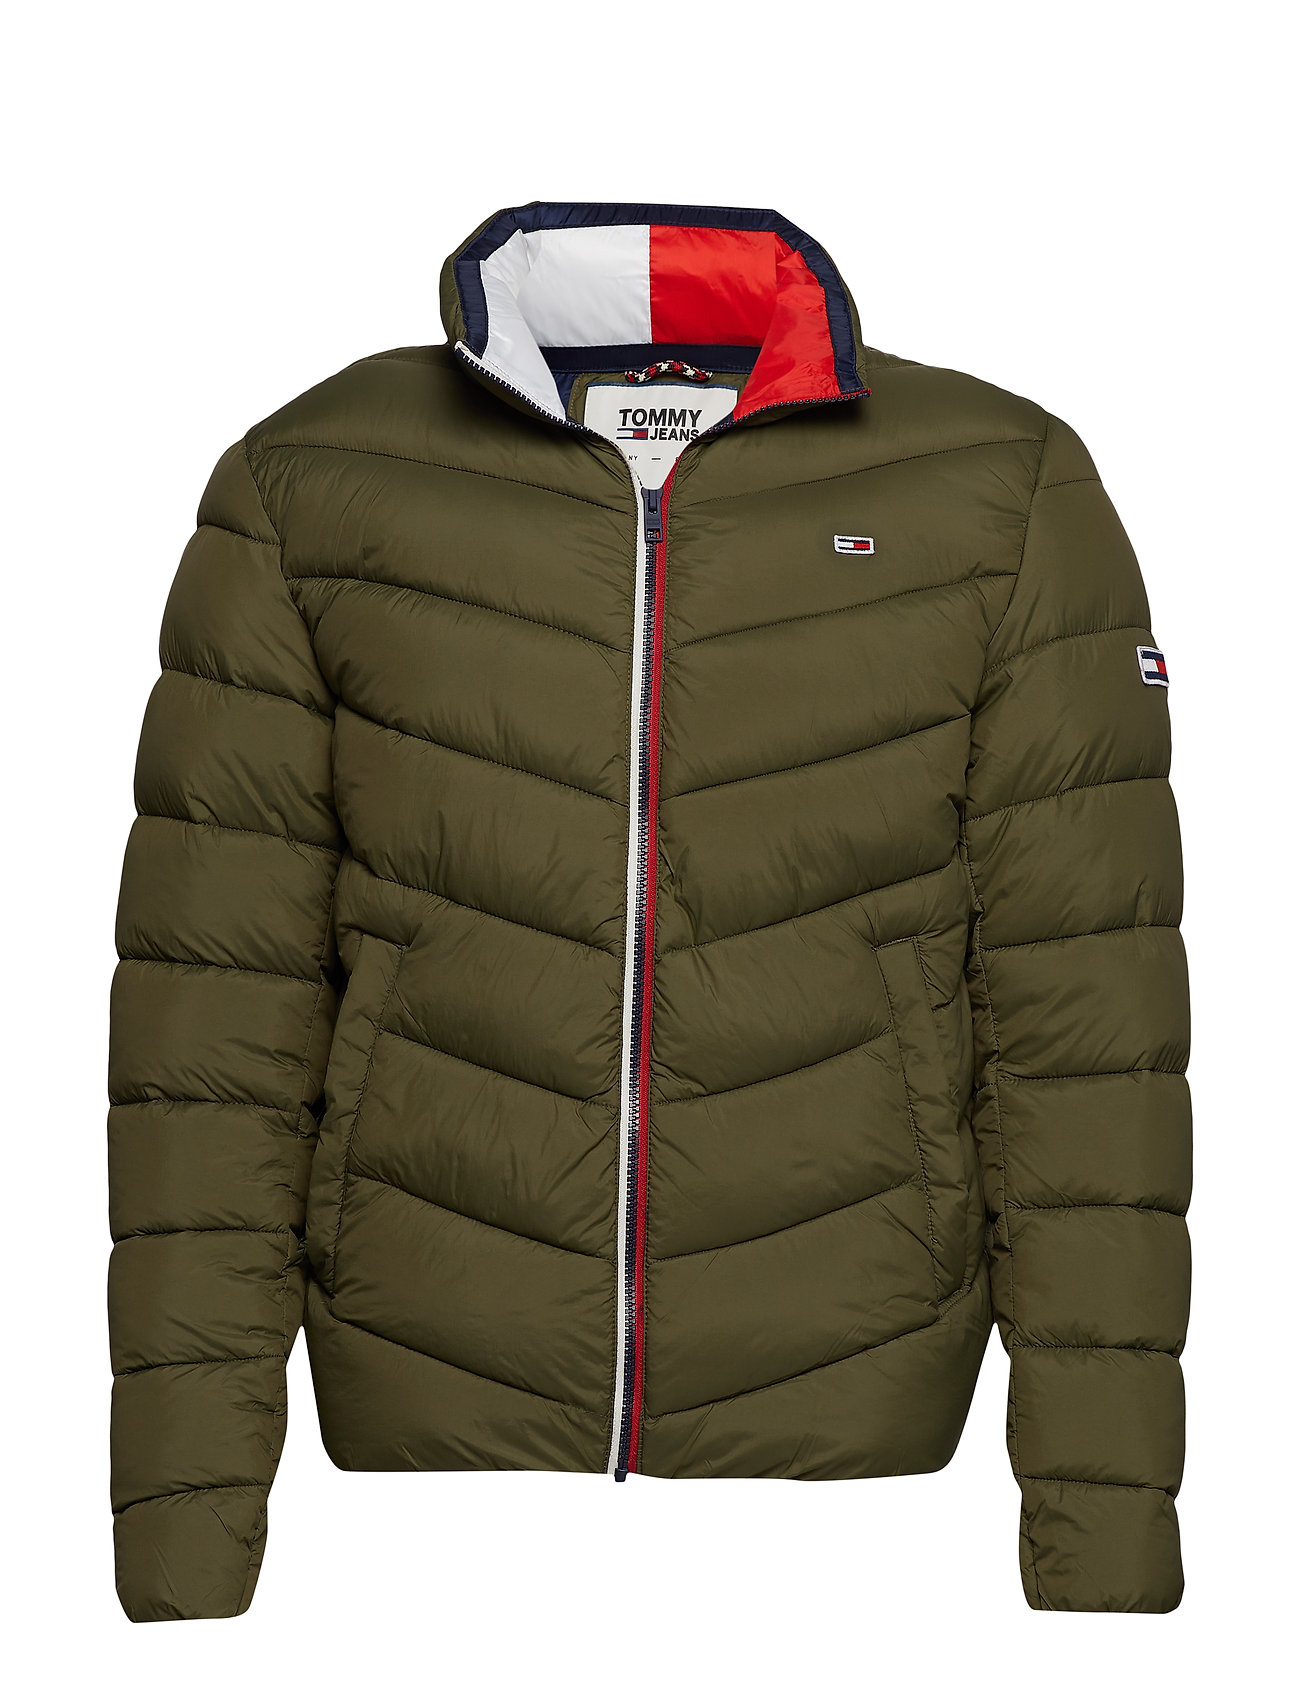 Tommy Jeans TJM ESSENTIAL PUFFER JACKET - OLIVE NIGHT